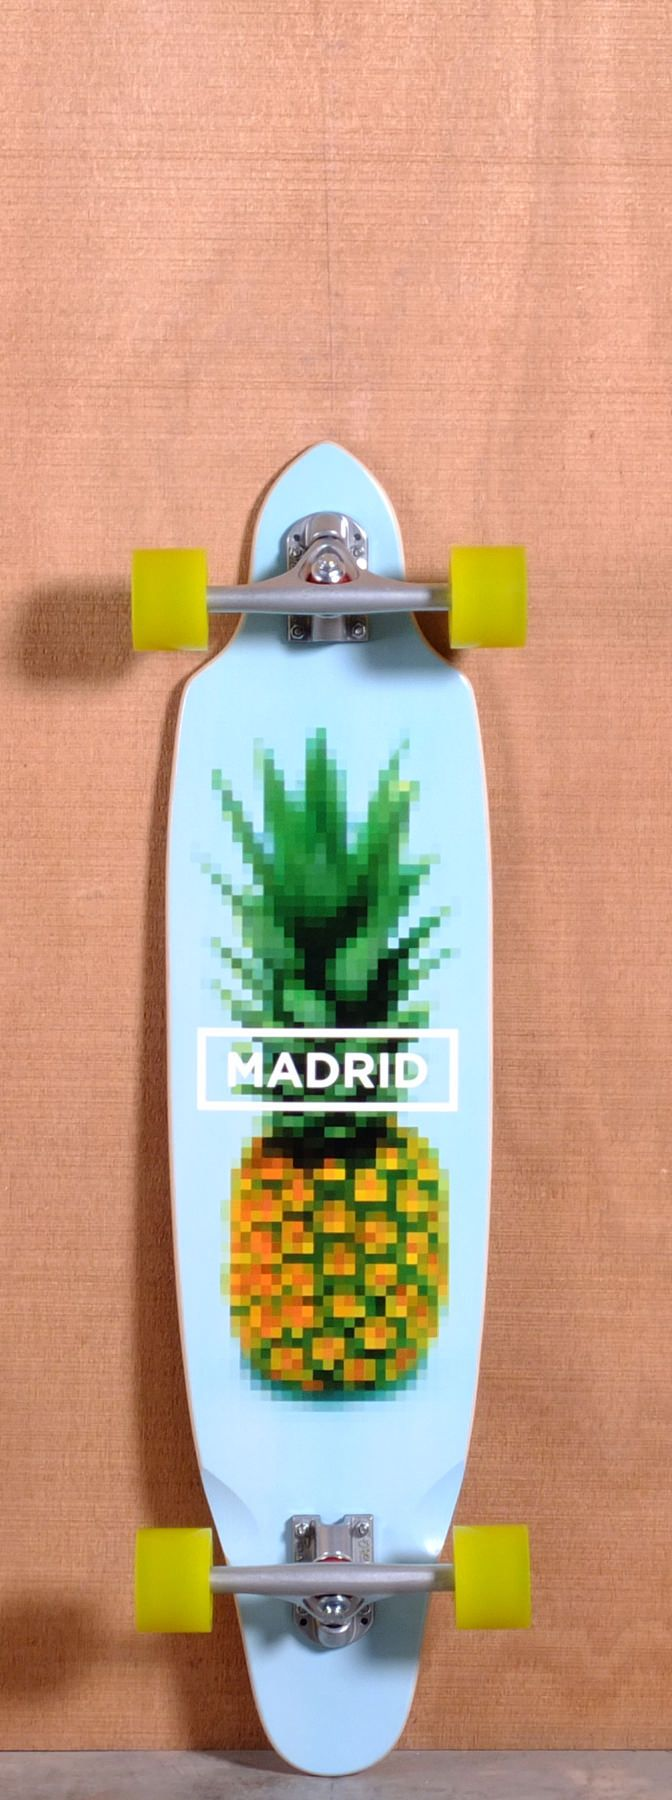 """The Madrid Pineapple Longboard Complete is designed for Cruising and Carving. Ships fully assembled and ready to skate! Function: Cruising, Carving Features: Camber, Concave, Kick Tail, Sanded Wheel Wells Material: 7 Ply Maple Length: 36"""" Width: 9"""" Wheelbase: 23.75"""" Thickness: 7/16"""" Hole Pattern: New School Grip: Black"""